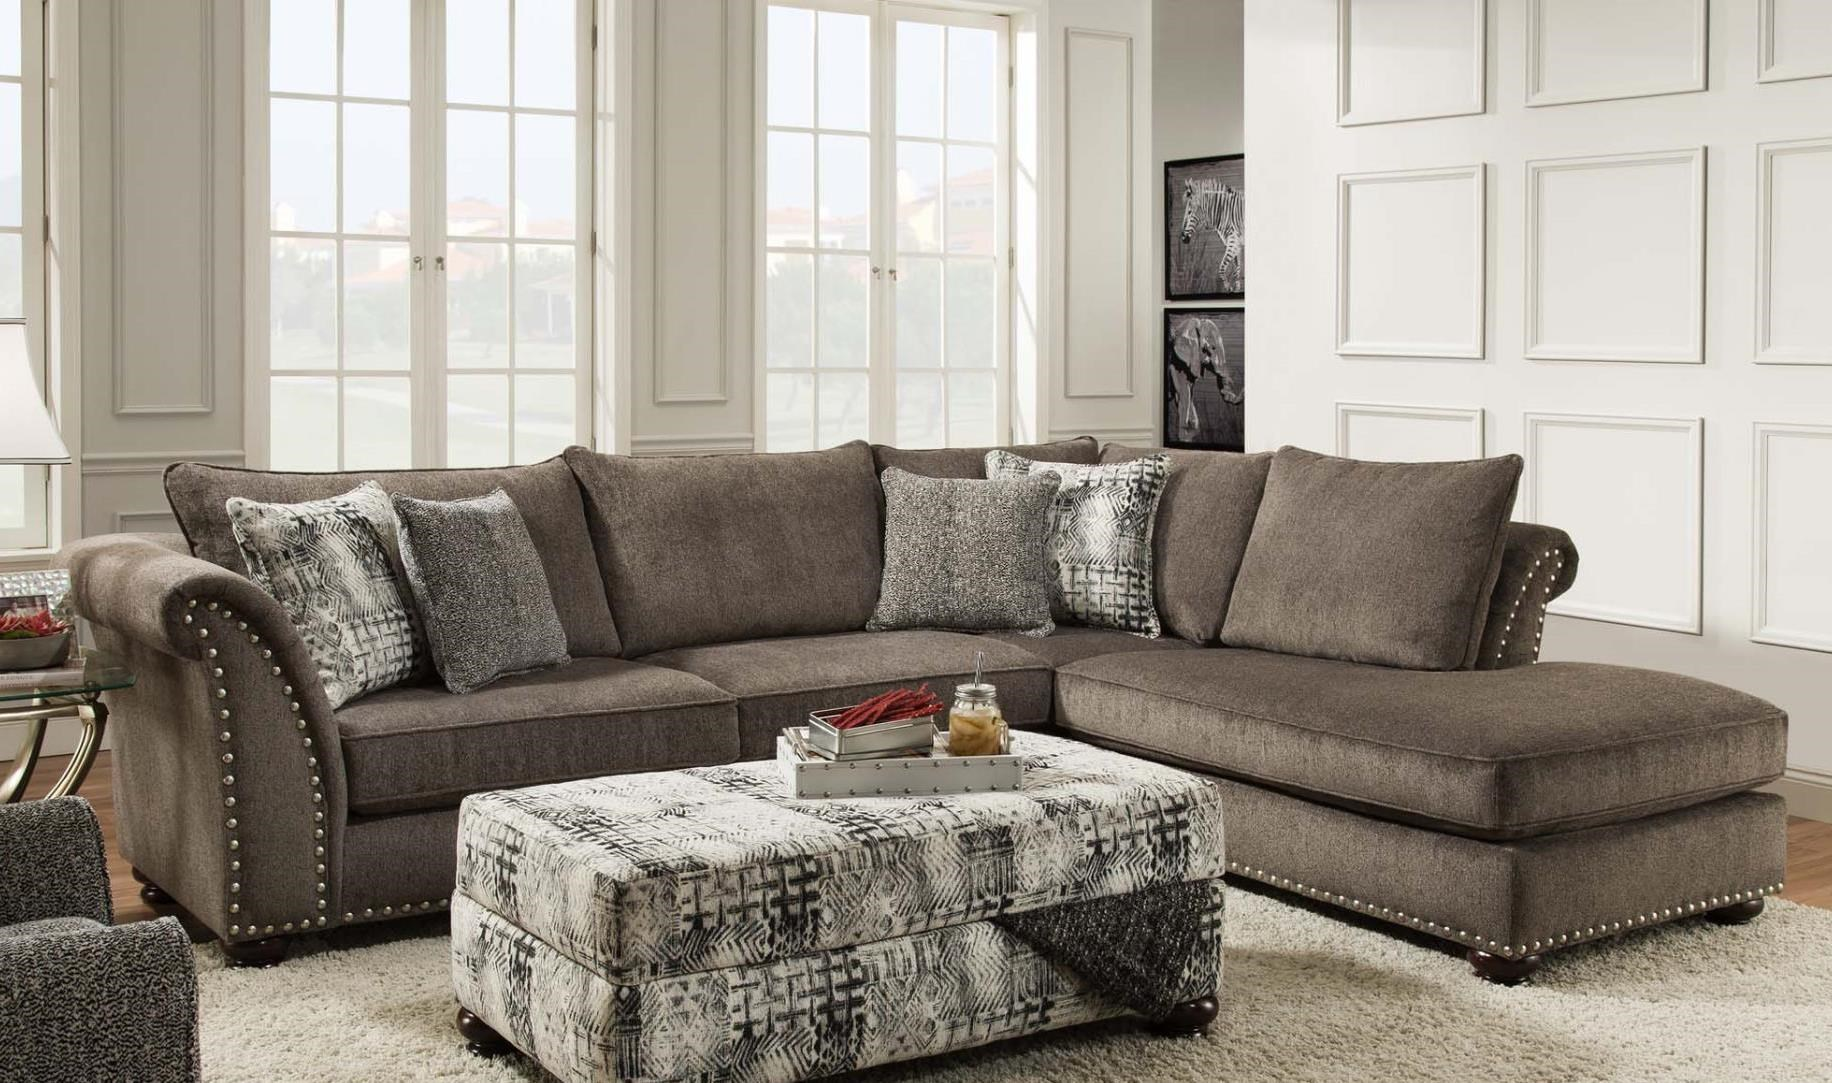 Albany 390 Transitional Two Piece Sectional with Chaise  sc 1 st  A1 Furniture : sectional with two chaises - Sectionals, Sofas & Couches